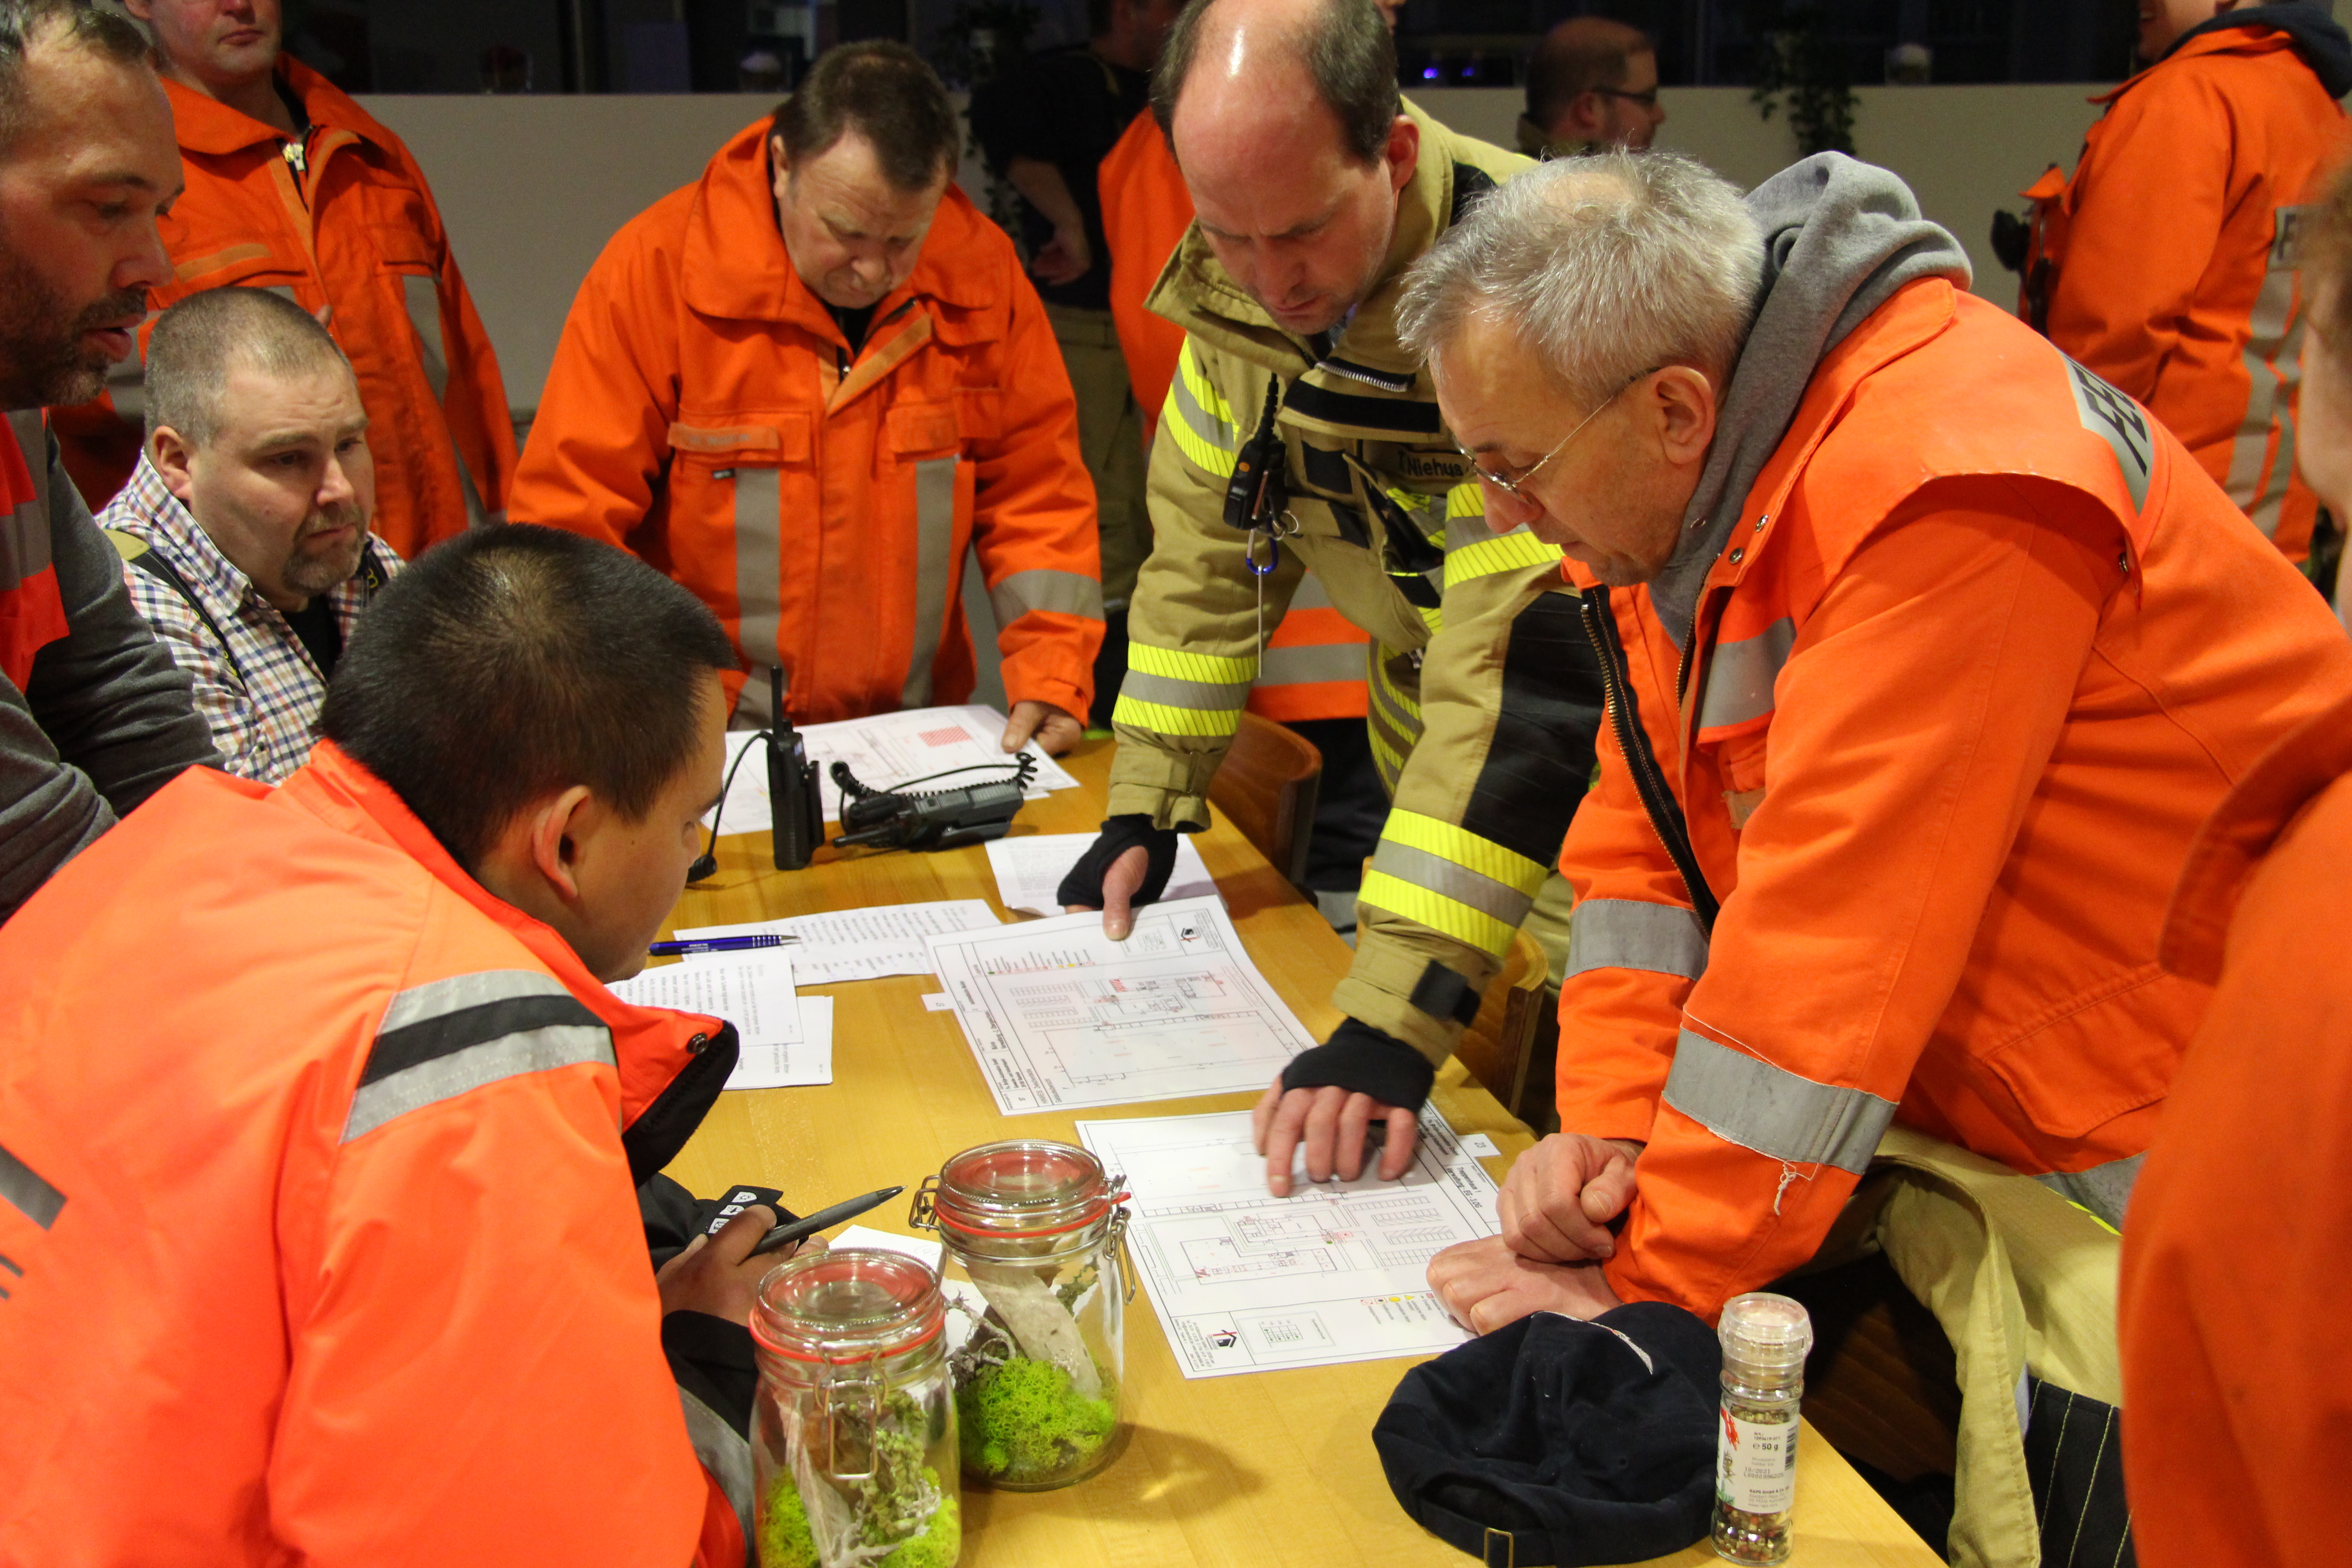 The Loy fire brigade carried out a routine exercise to orient and improve local knowledge at Broetje-Automation in Loy. (Photo: Broetje-Automation)